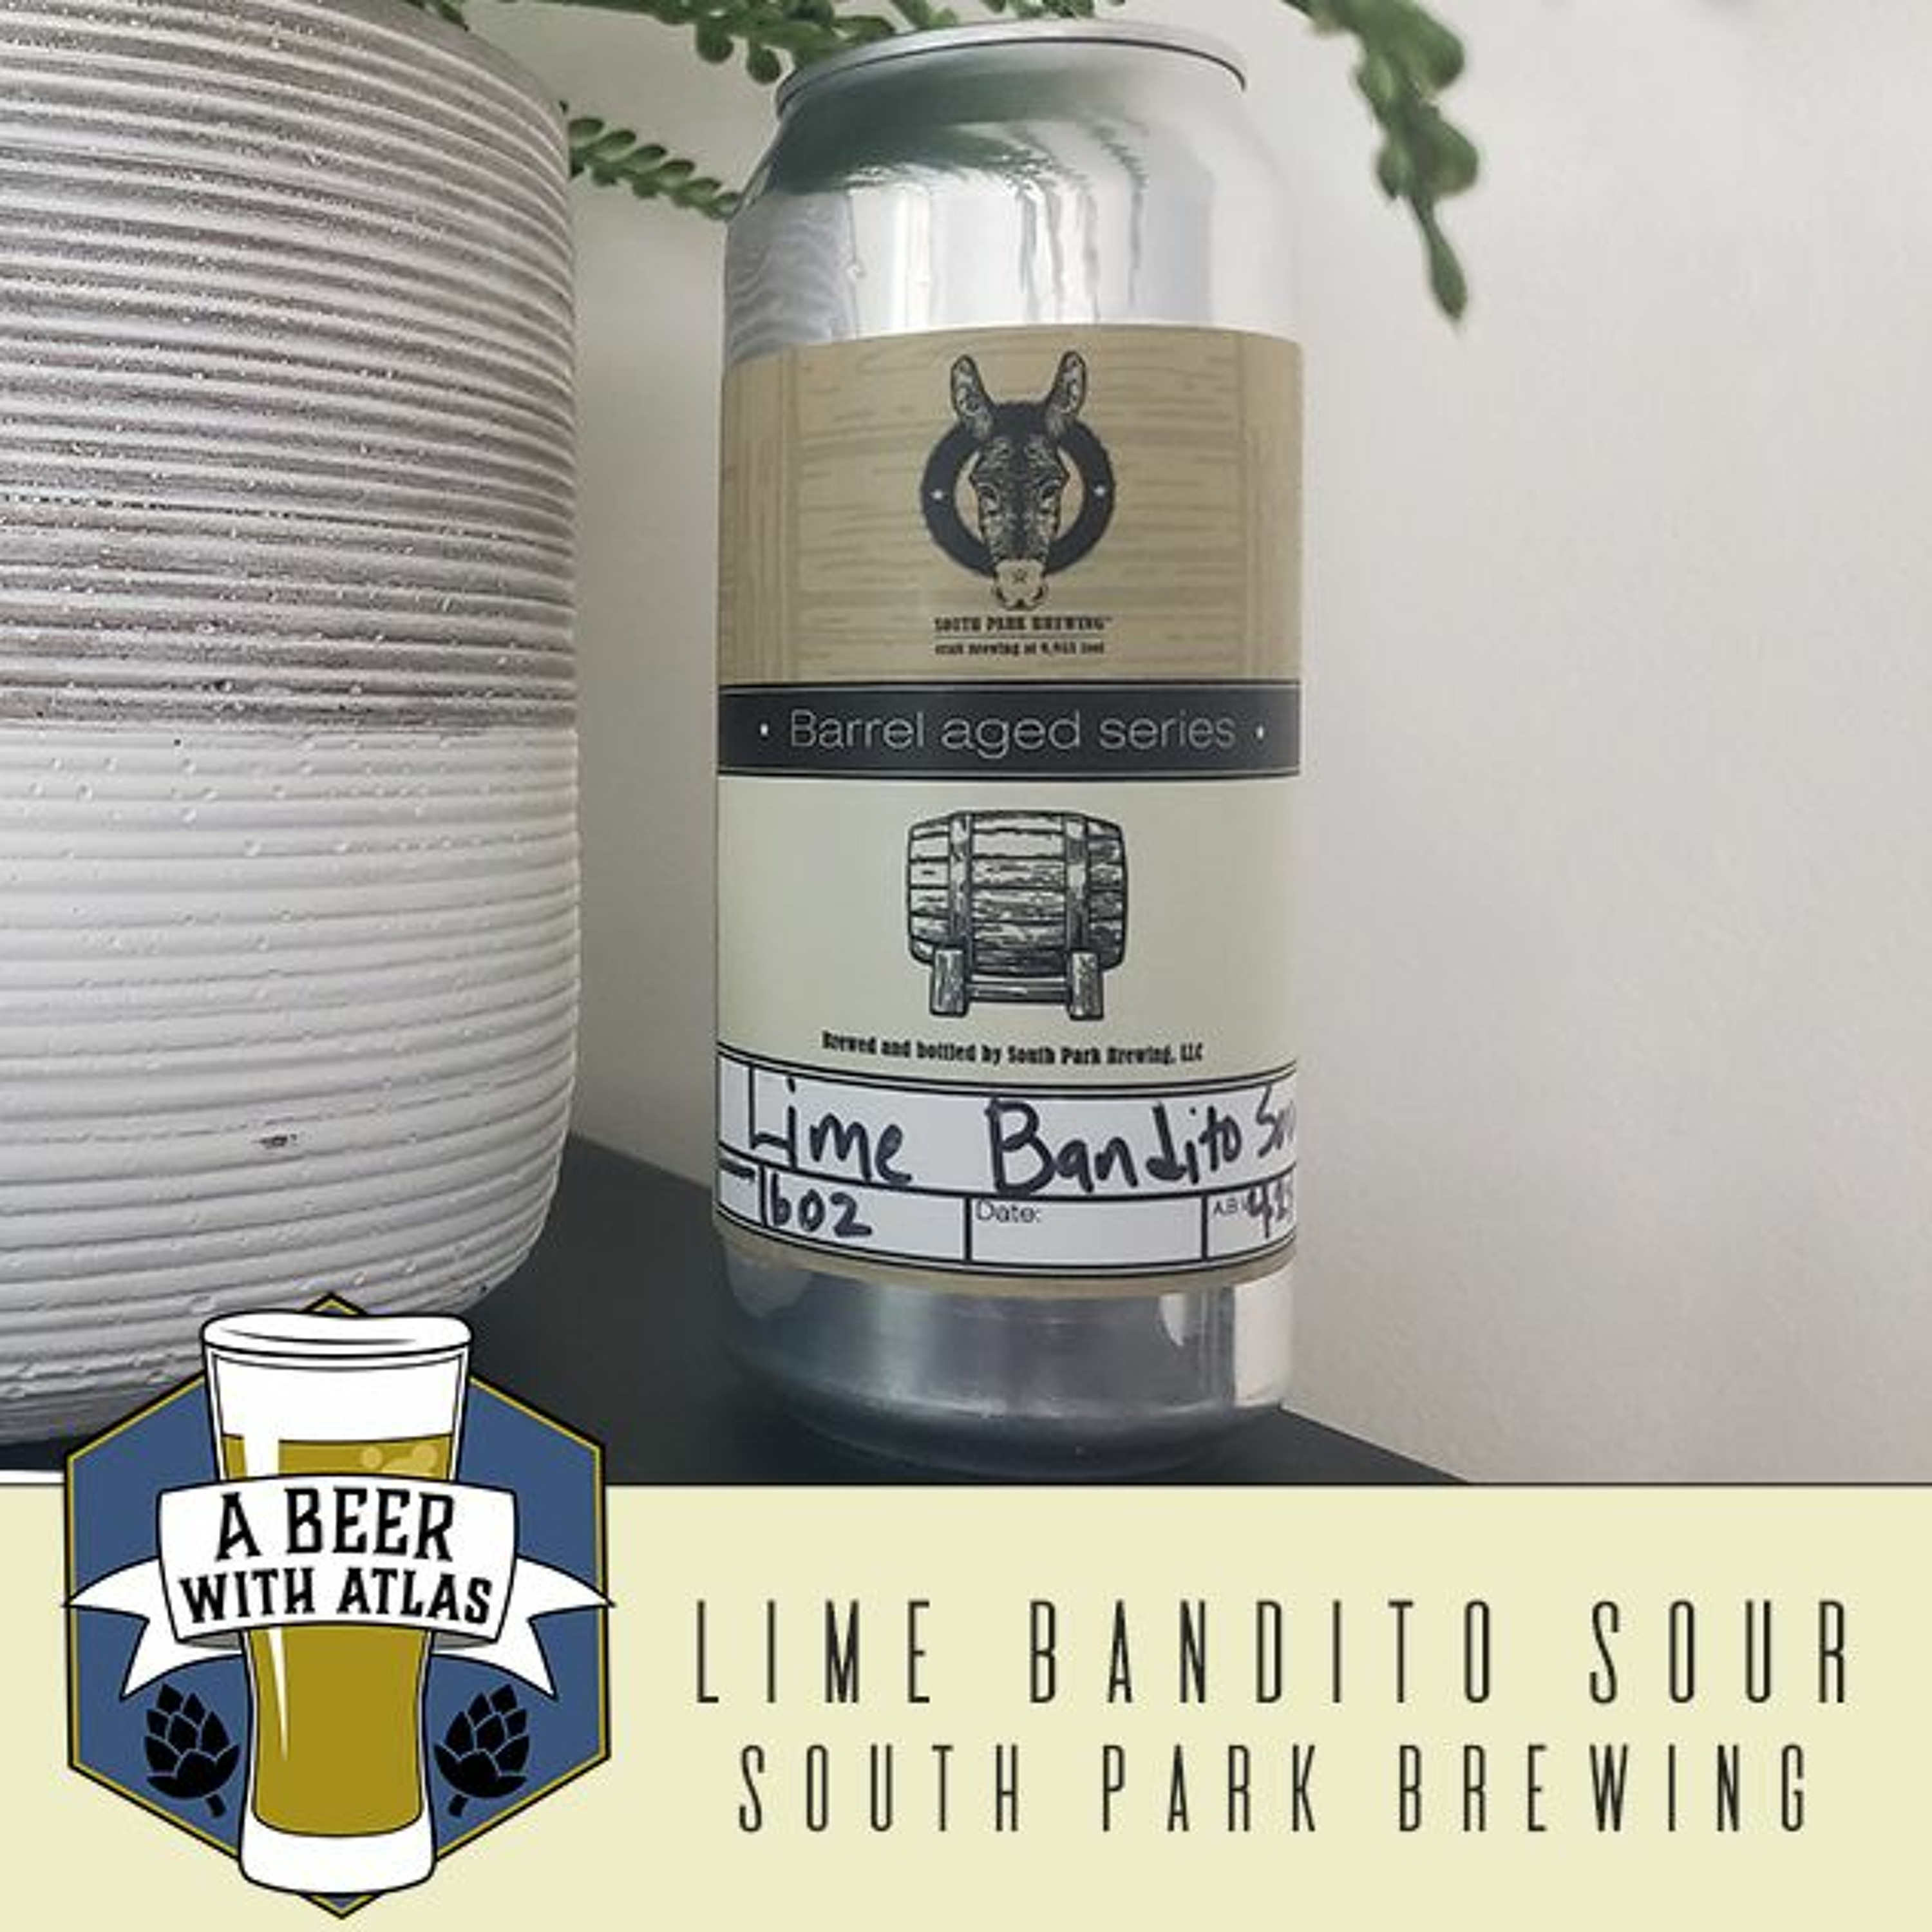 Lime Bandito Sour from South Park Brewing - Beer With Atlas 106